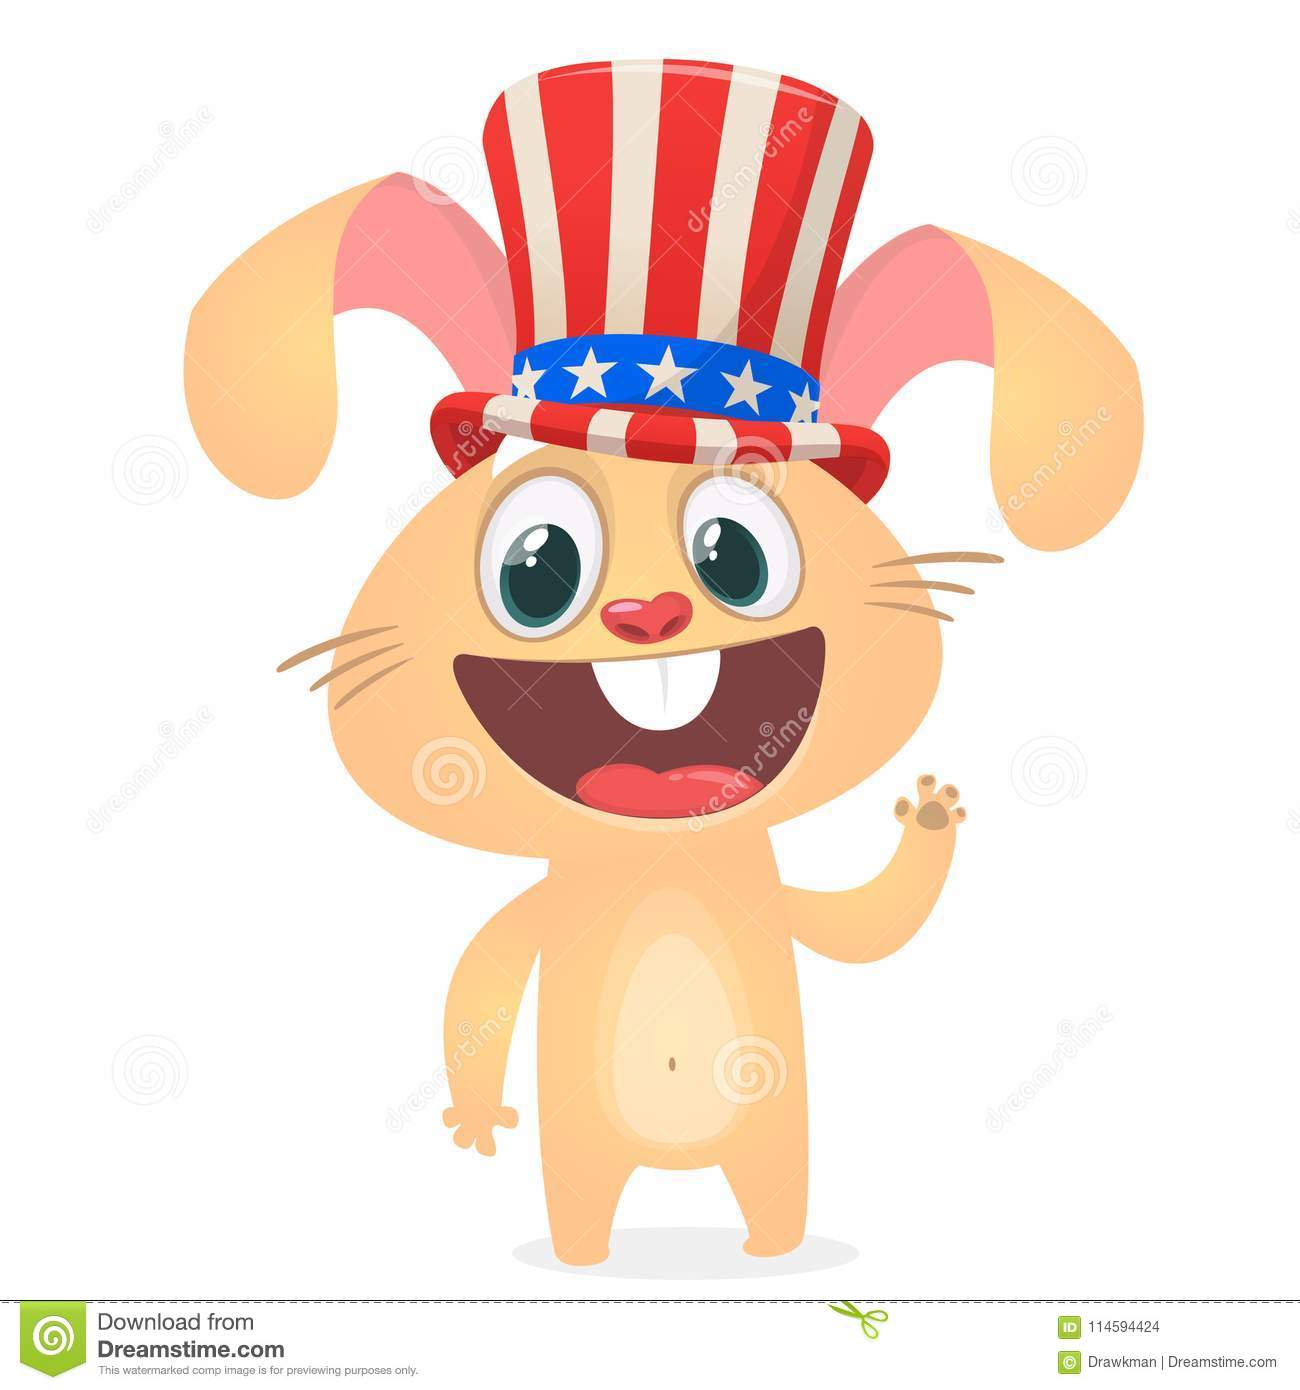 Happy 4th of July sticker card with cartoon rabbit. Vector illustration